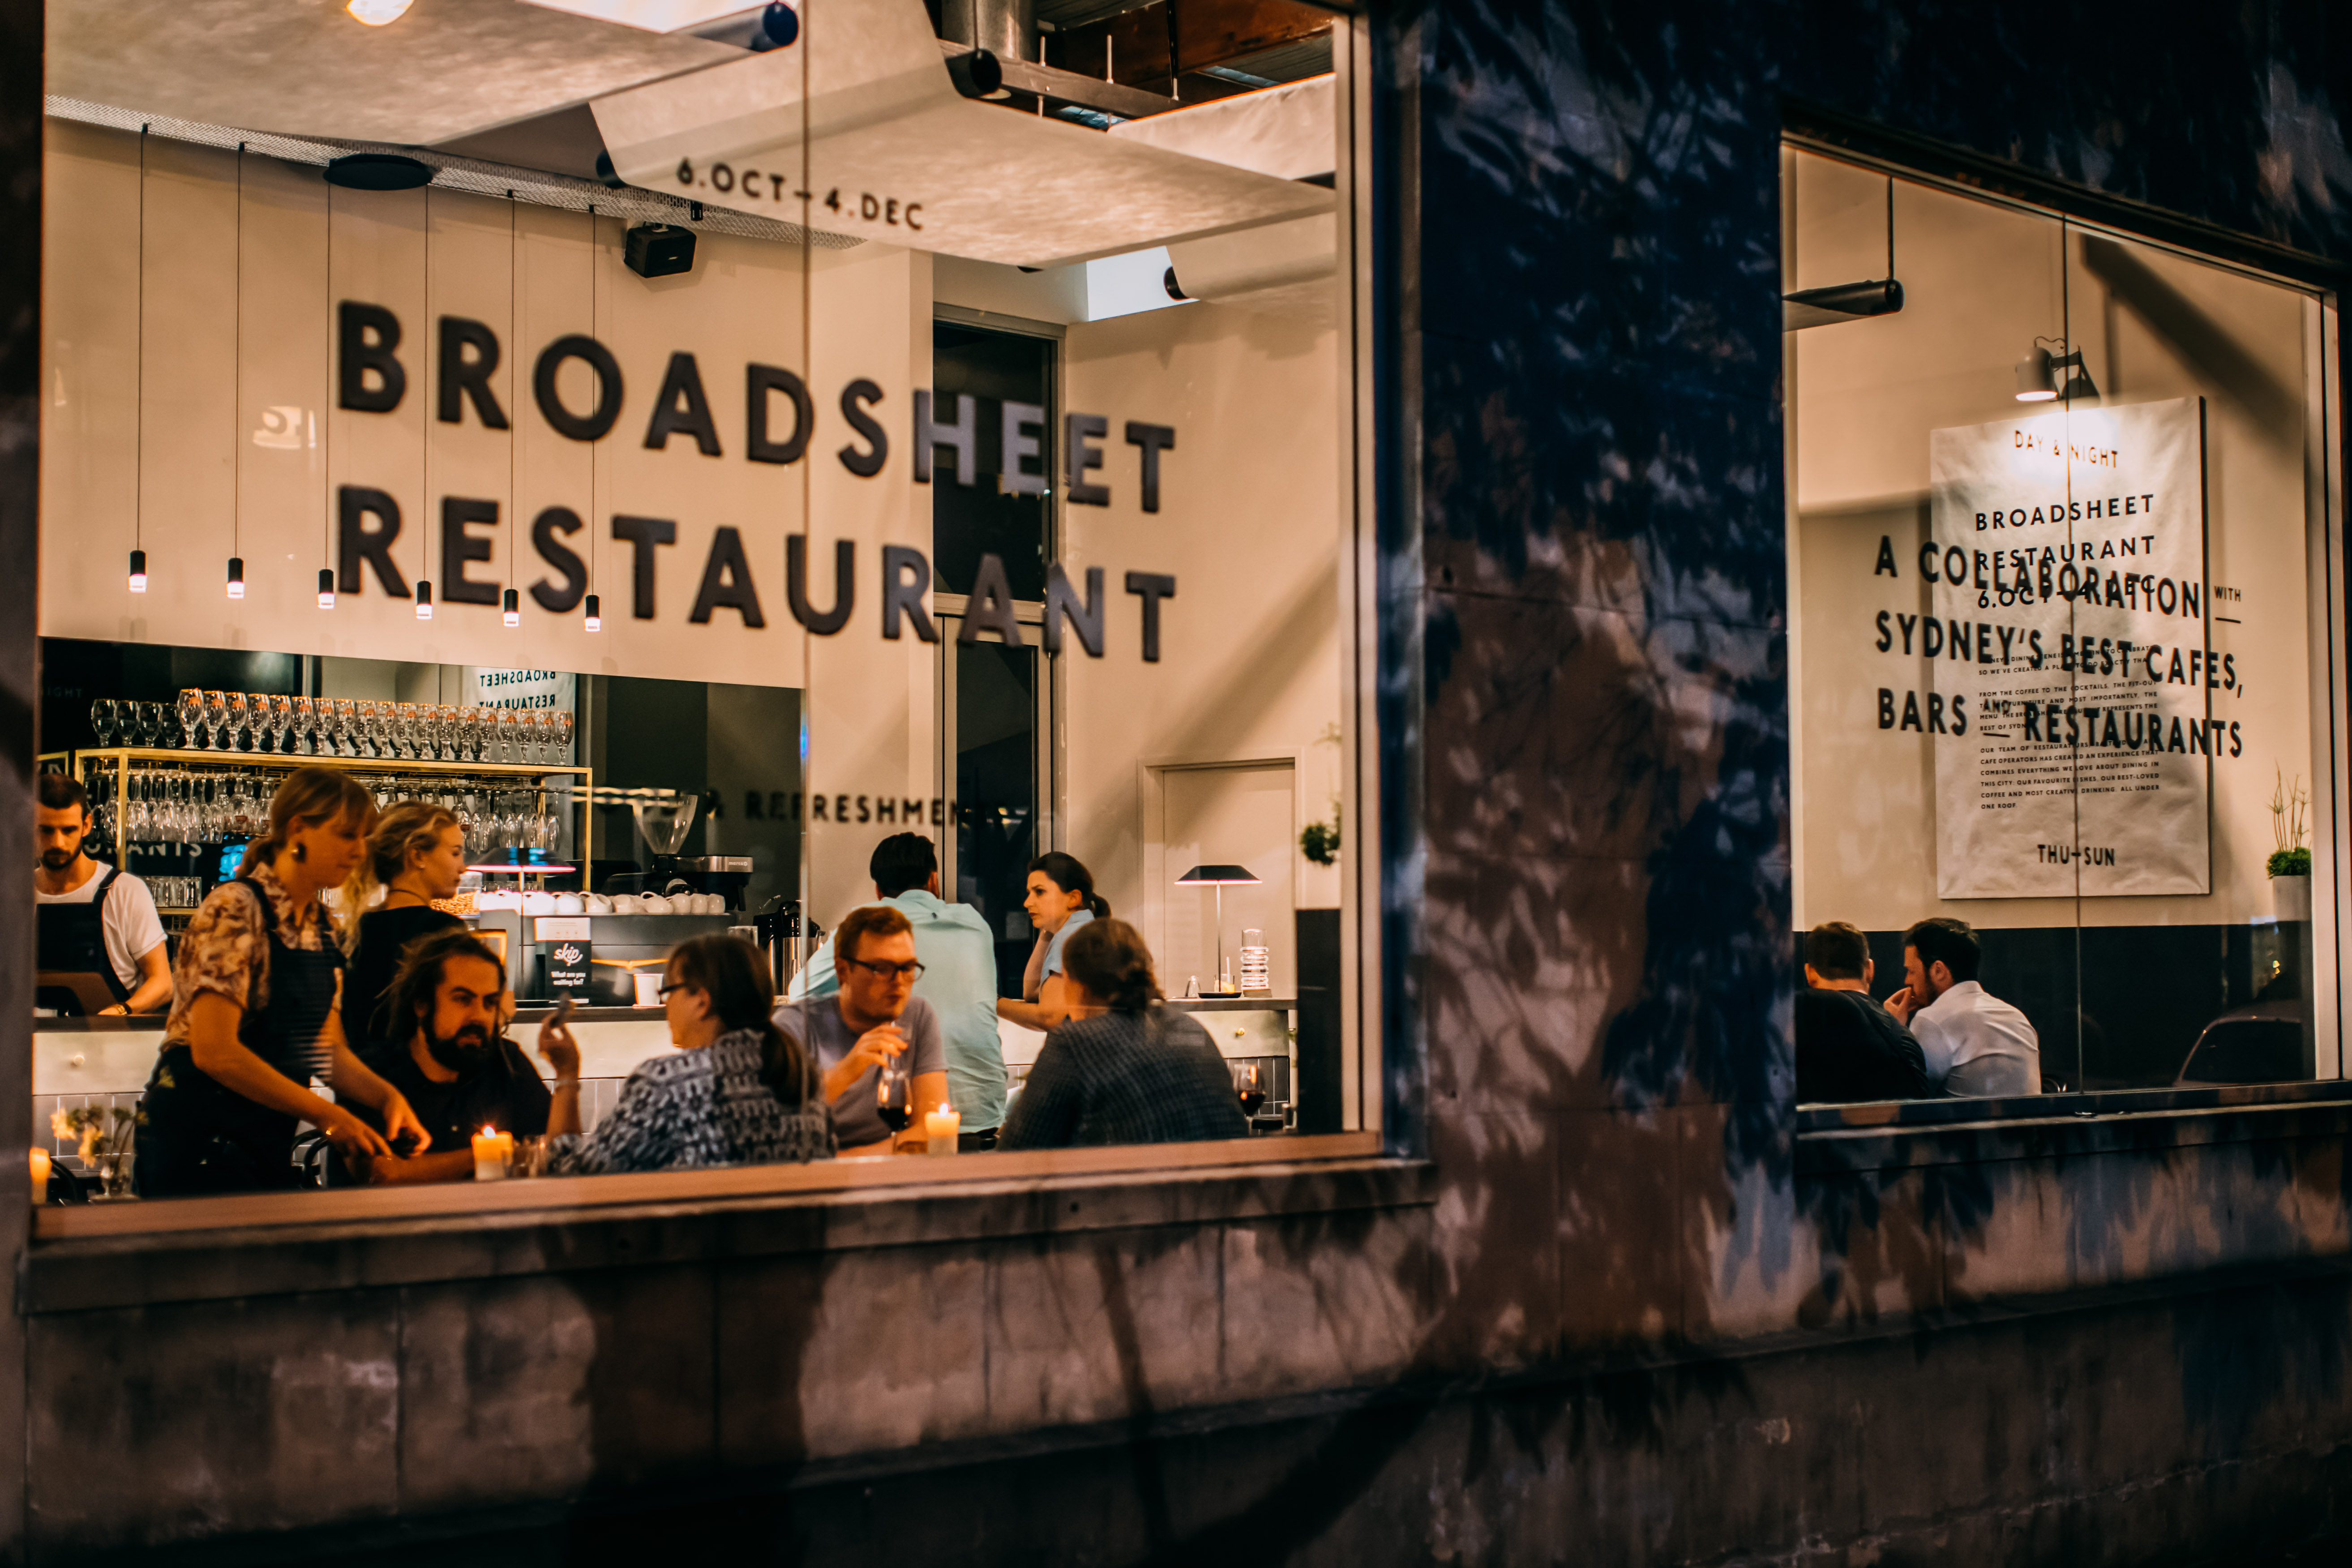 October 2016 – The Broadsheet Restaurant opens in Waterloo, Sydney | Photography by Nikki To